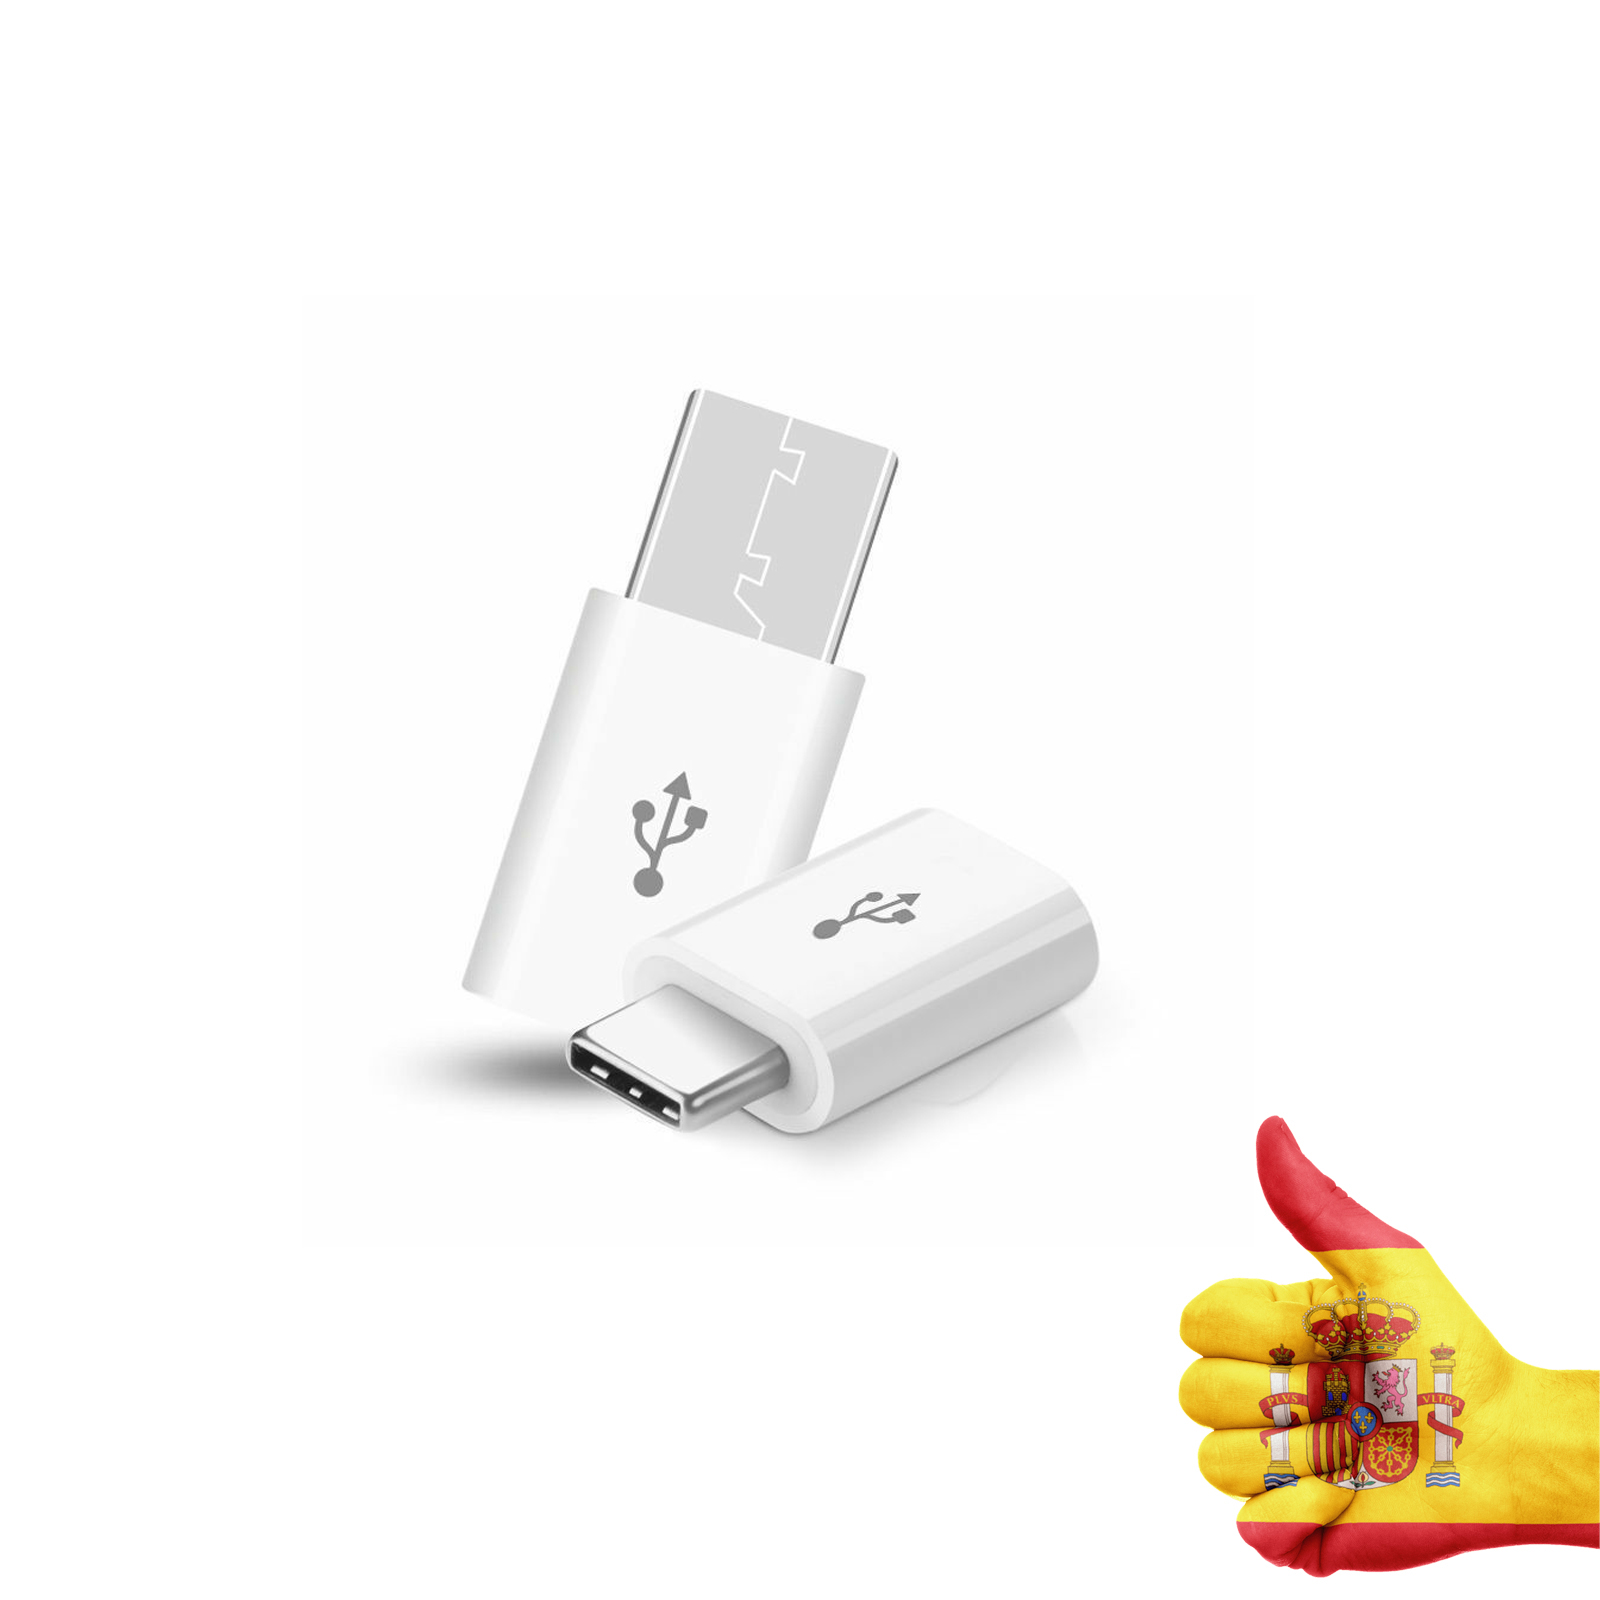 OTG Adapter Type-c USB-C A Micro-USB OTG Cable Thunderbolt 3 Adapter USB Type C For MacBook Pro Samsung S9